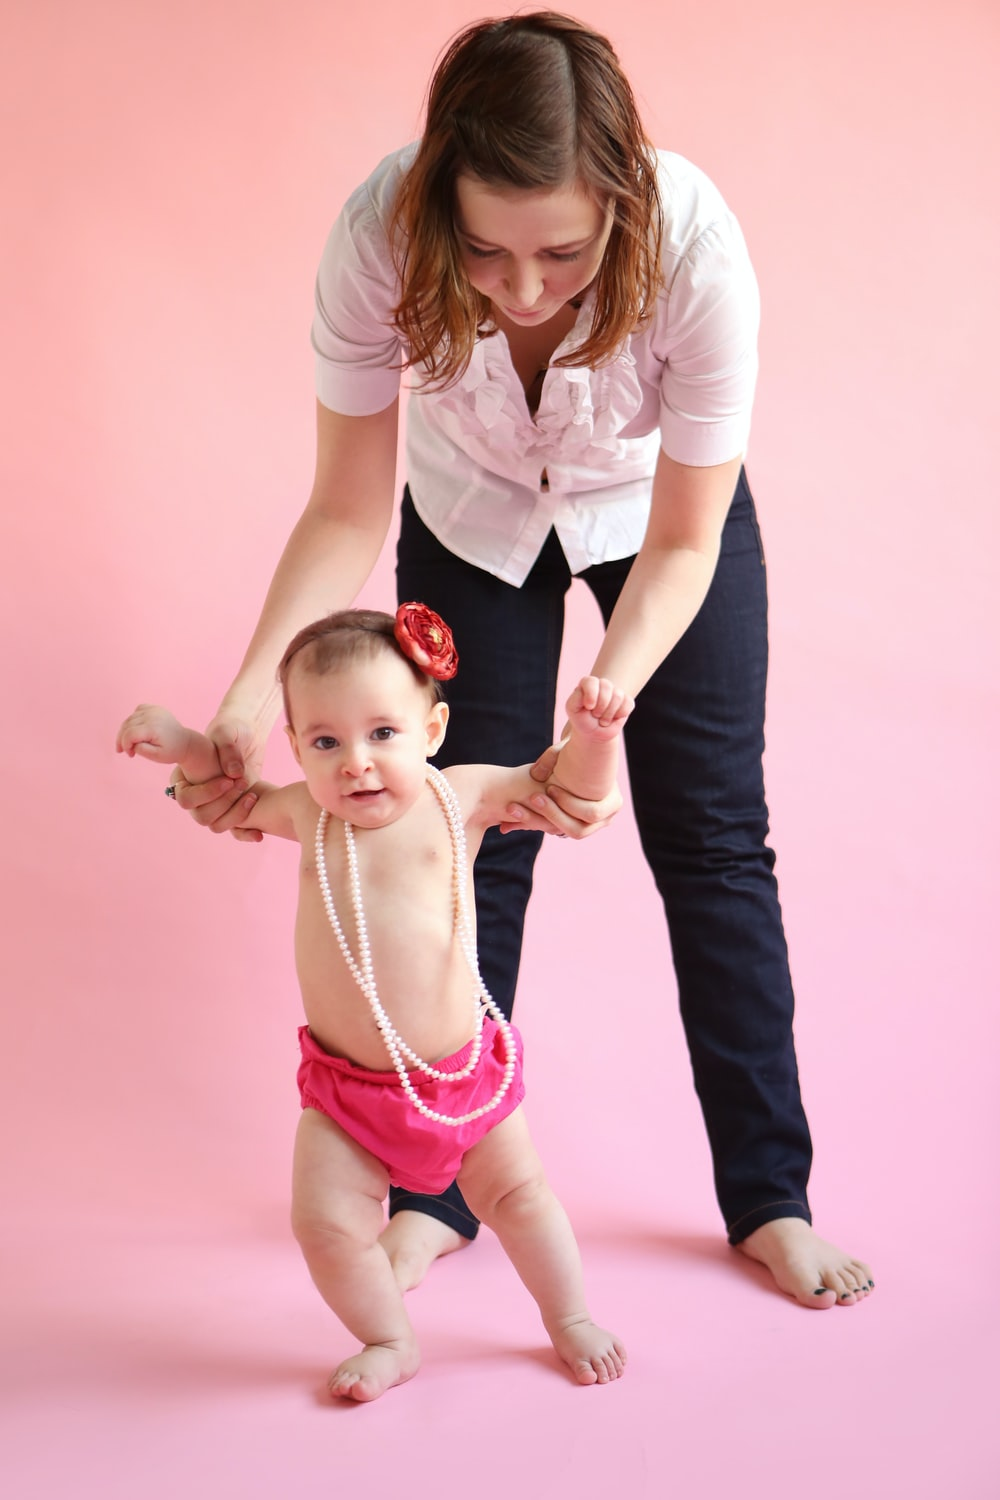 barefooted woman standing and assisting baby while walking